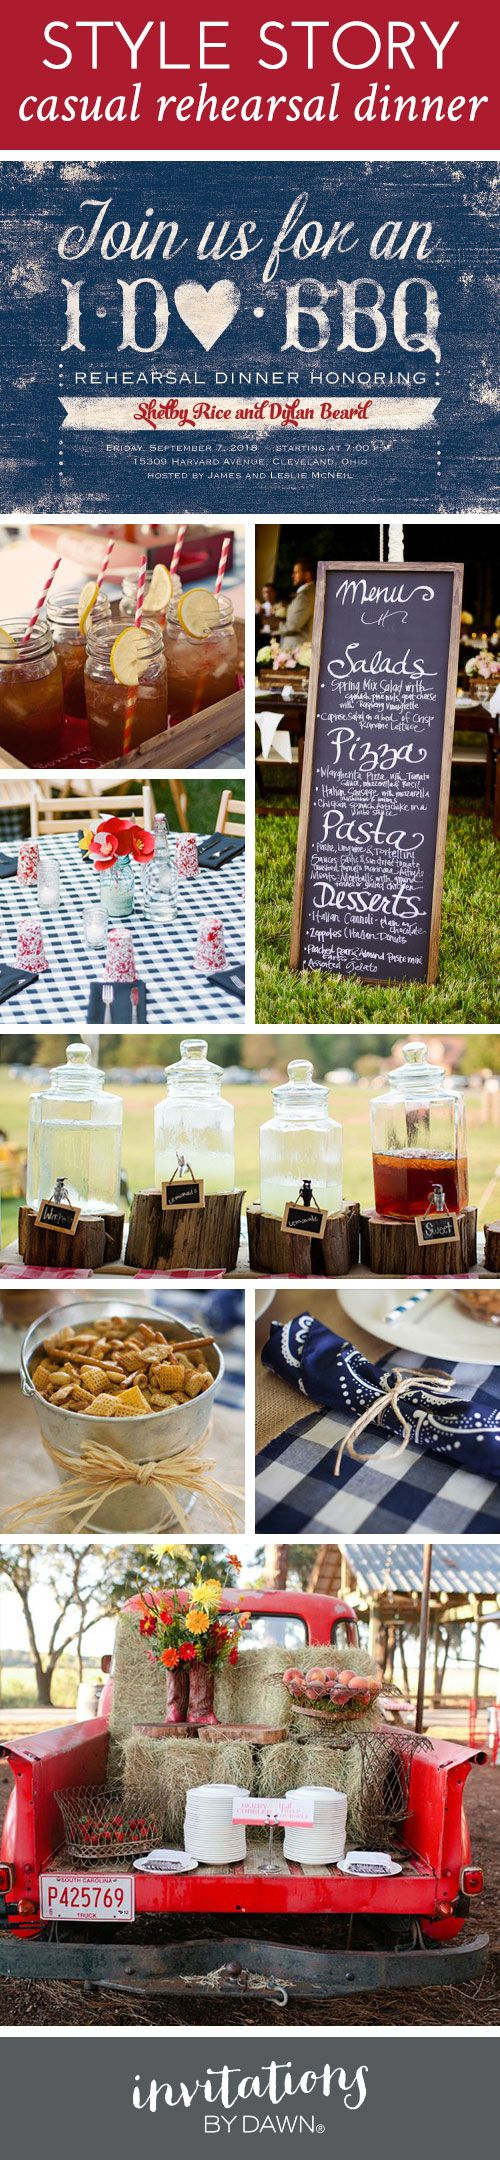 Style Story: Casual BBQ Rehearsal Dinner